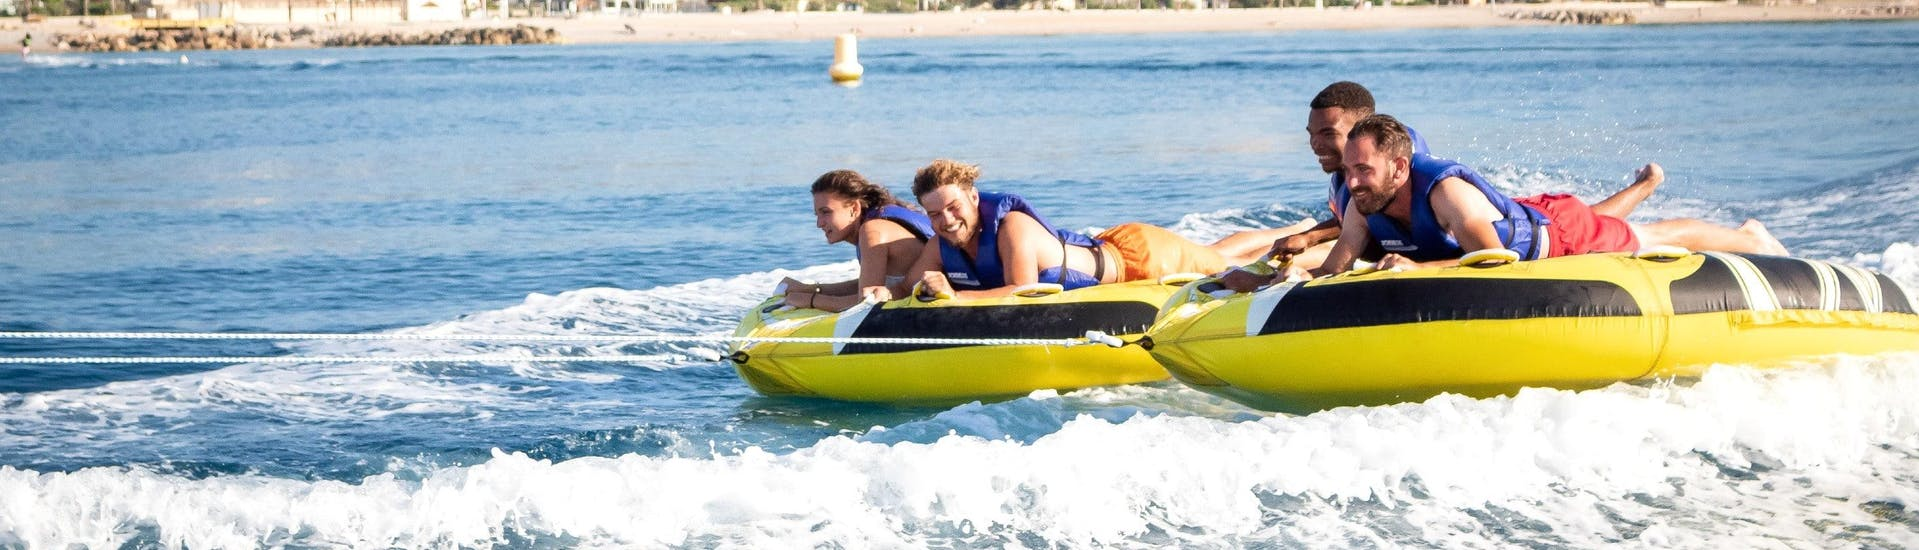 Friends are having fun on their ride with an Inflatable Boat in Villeneuve-Loubet with Plage des Marines.